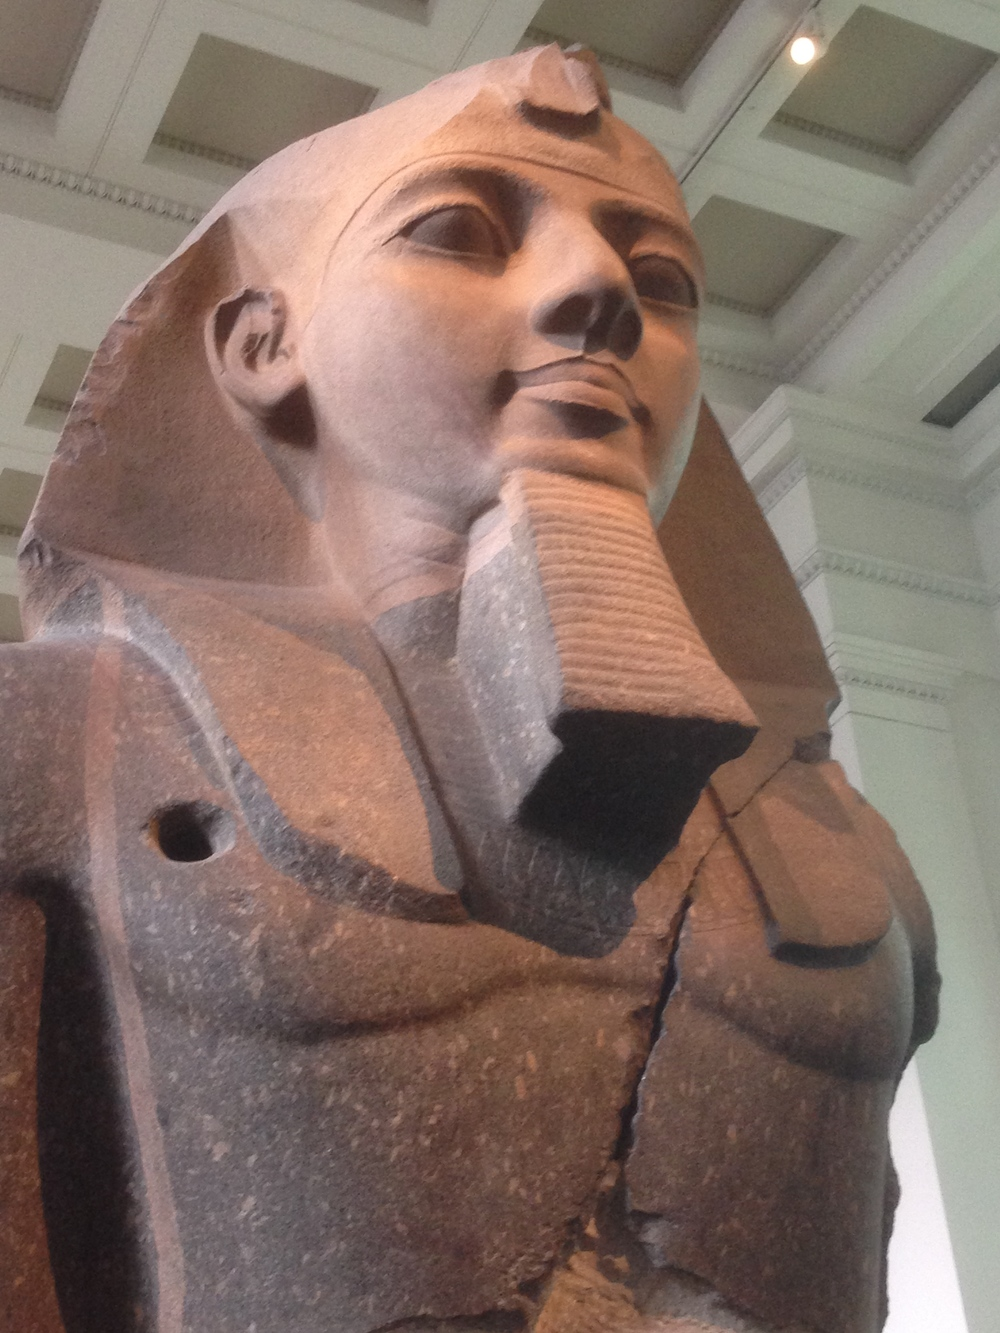 Ramses II, 19th dynasty, abt. 1270 BCE from the Ramesseum, western Thebes